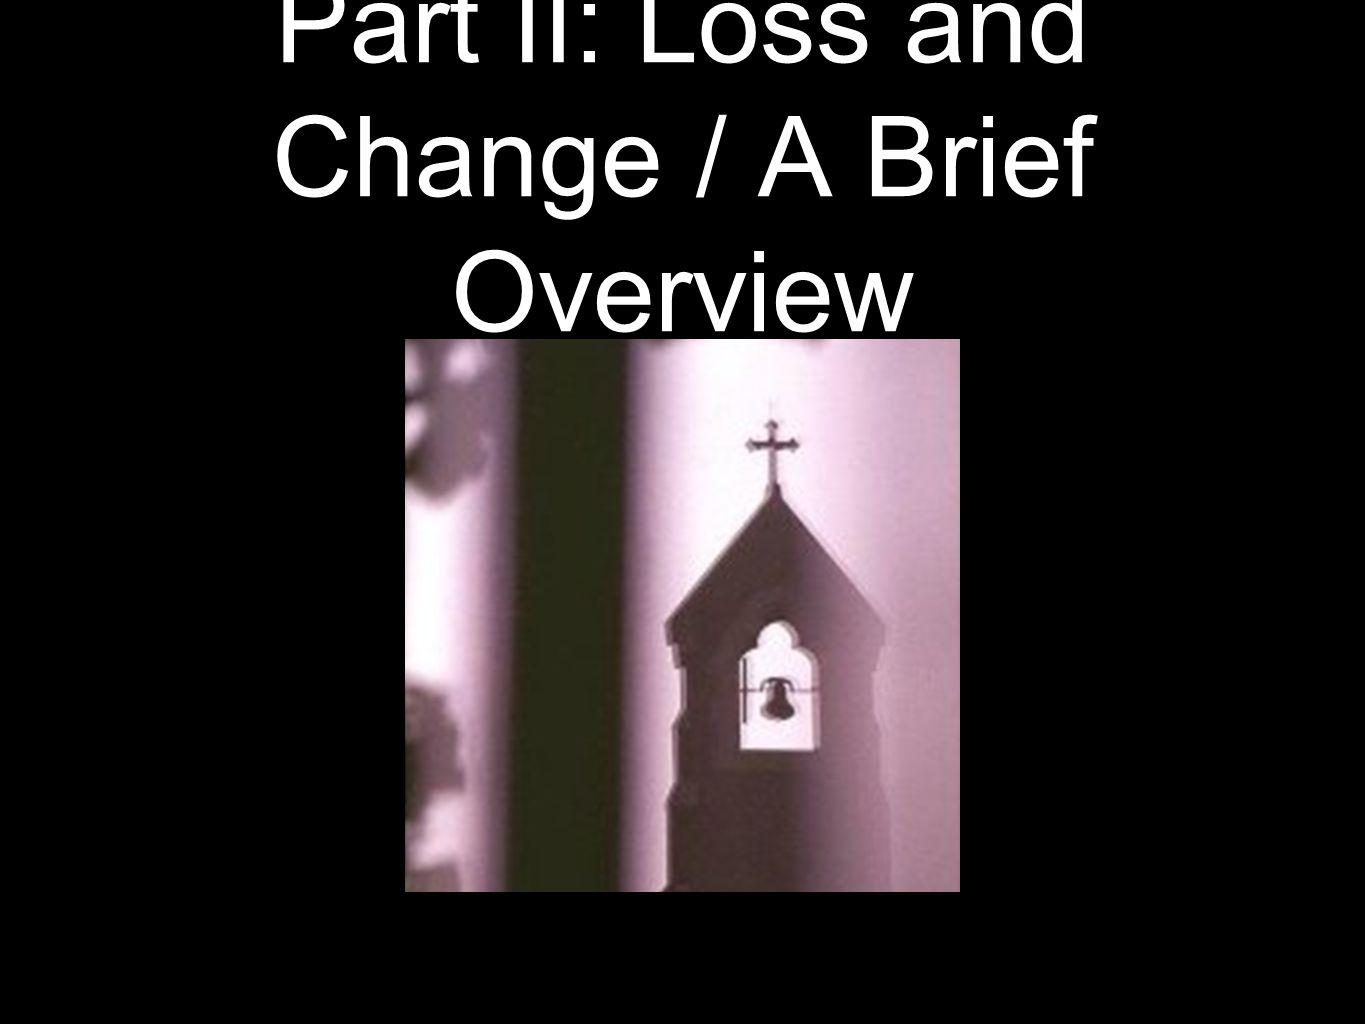 Part II: Loss and Change / A Brief Overview